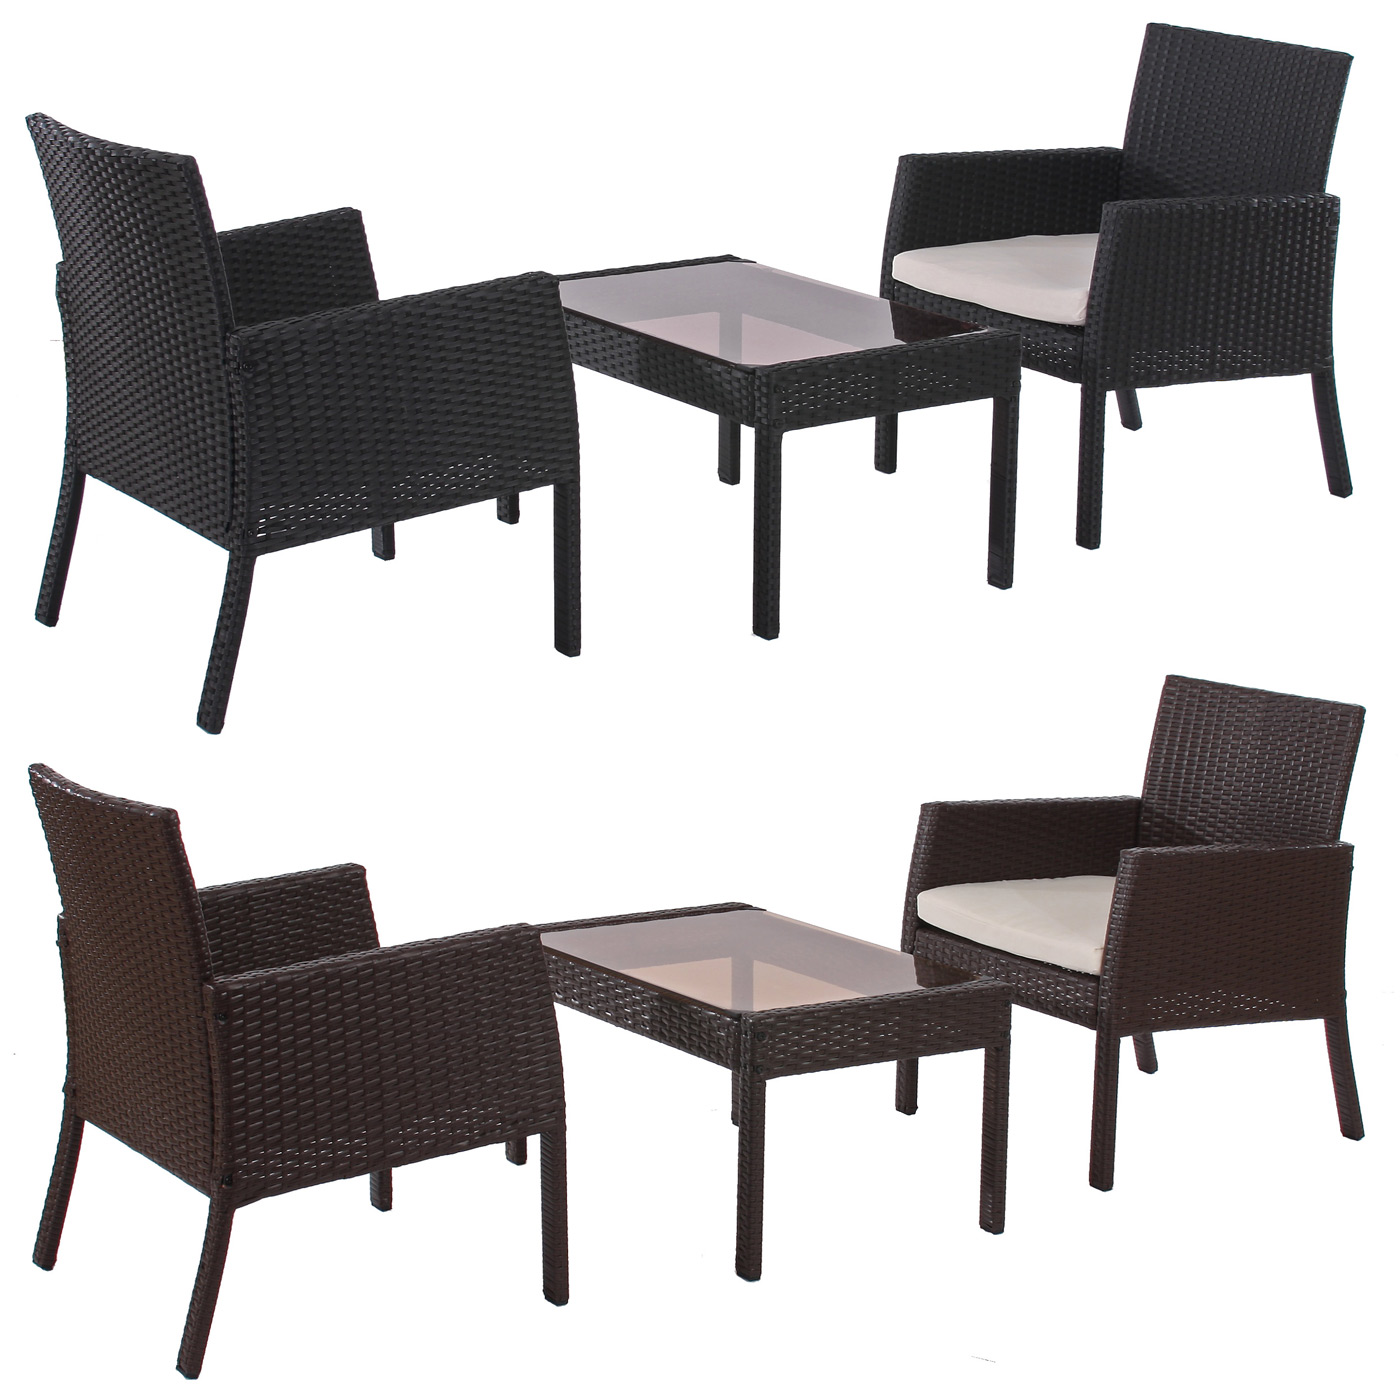 poly rattan garten garnitur sitzgruppe sanremo 2x sessel tisch ebay. Black Bedroom Furniture Sets. Home Design Ideas